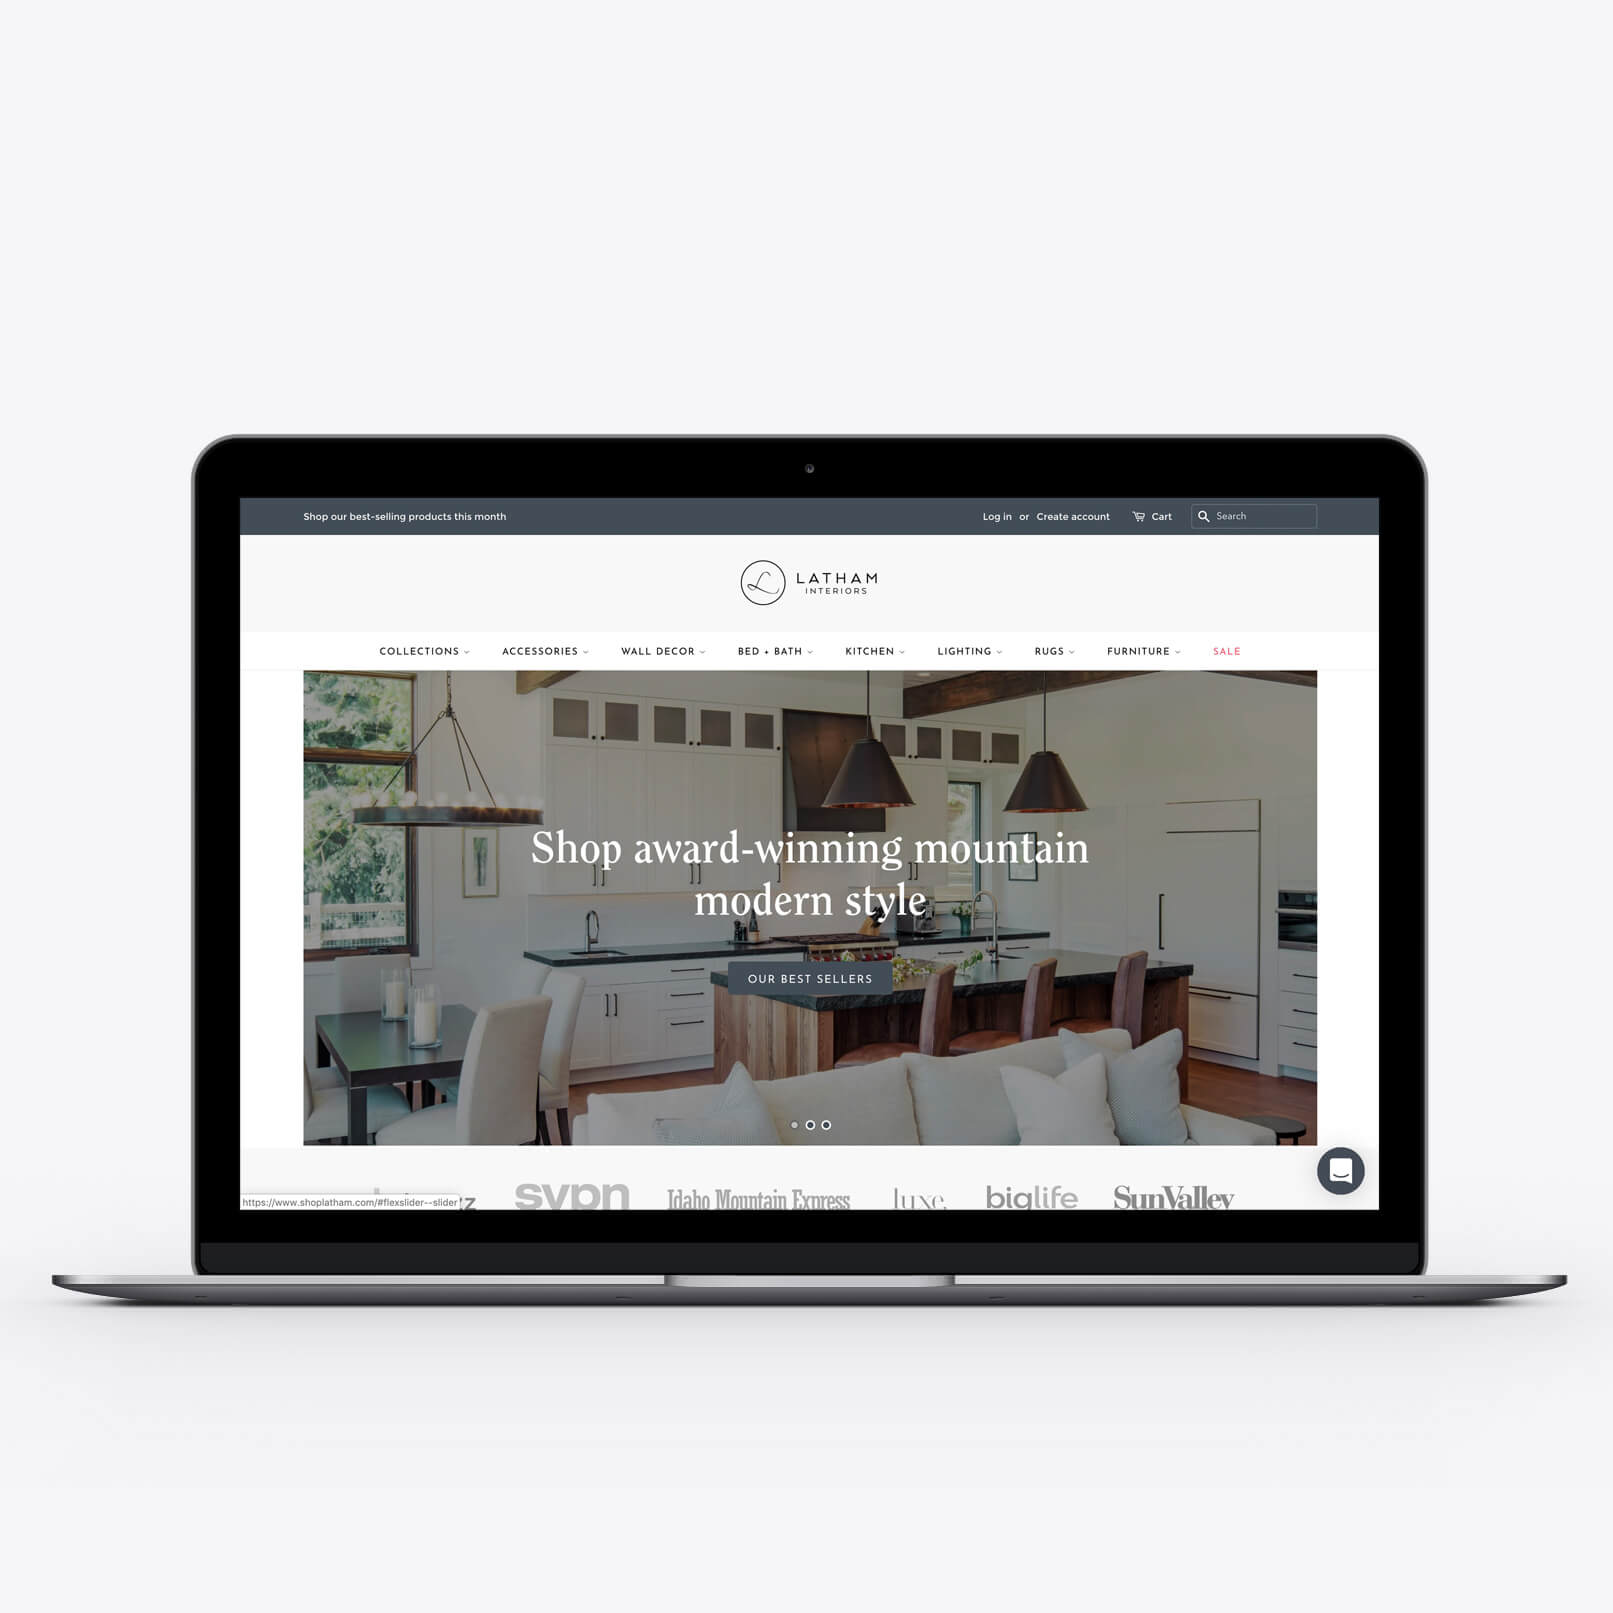 Shopify redesign - The Latham Interiors online store brought together modern, natural typefaces and a sophisticated color palette.